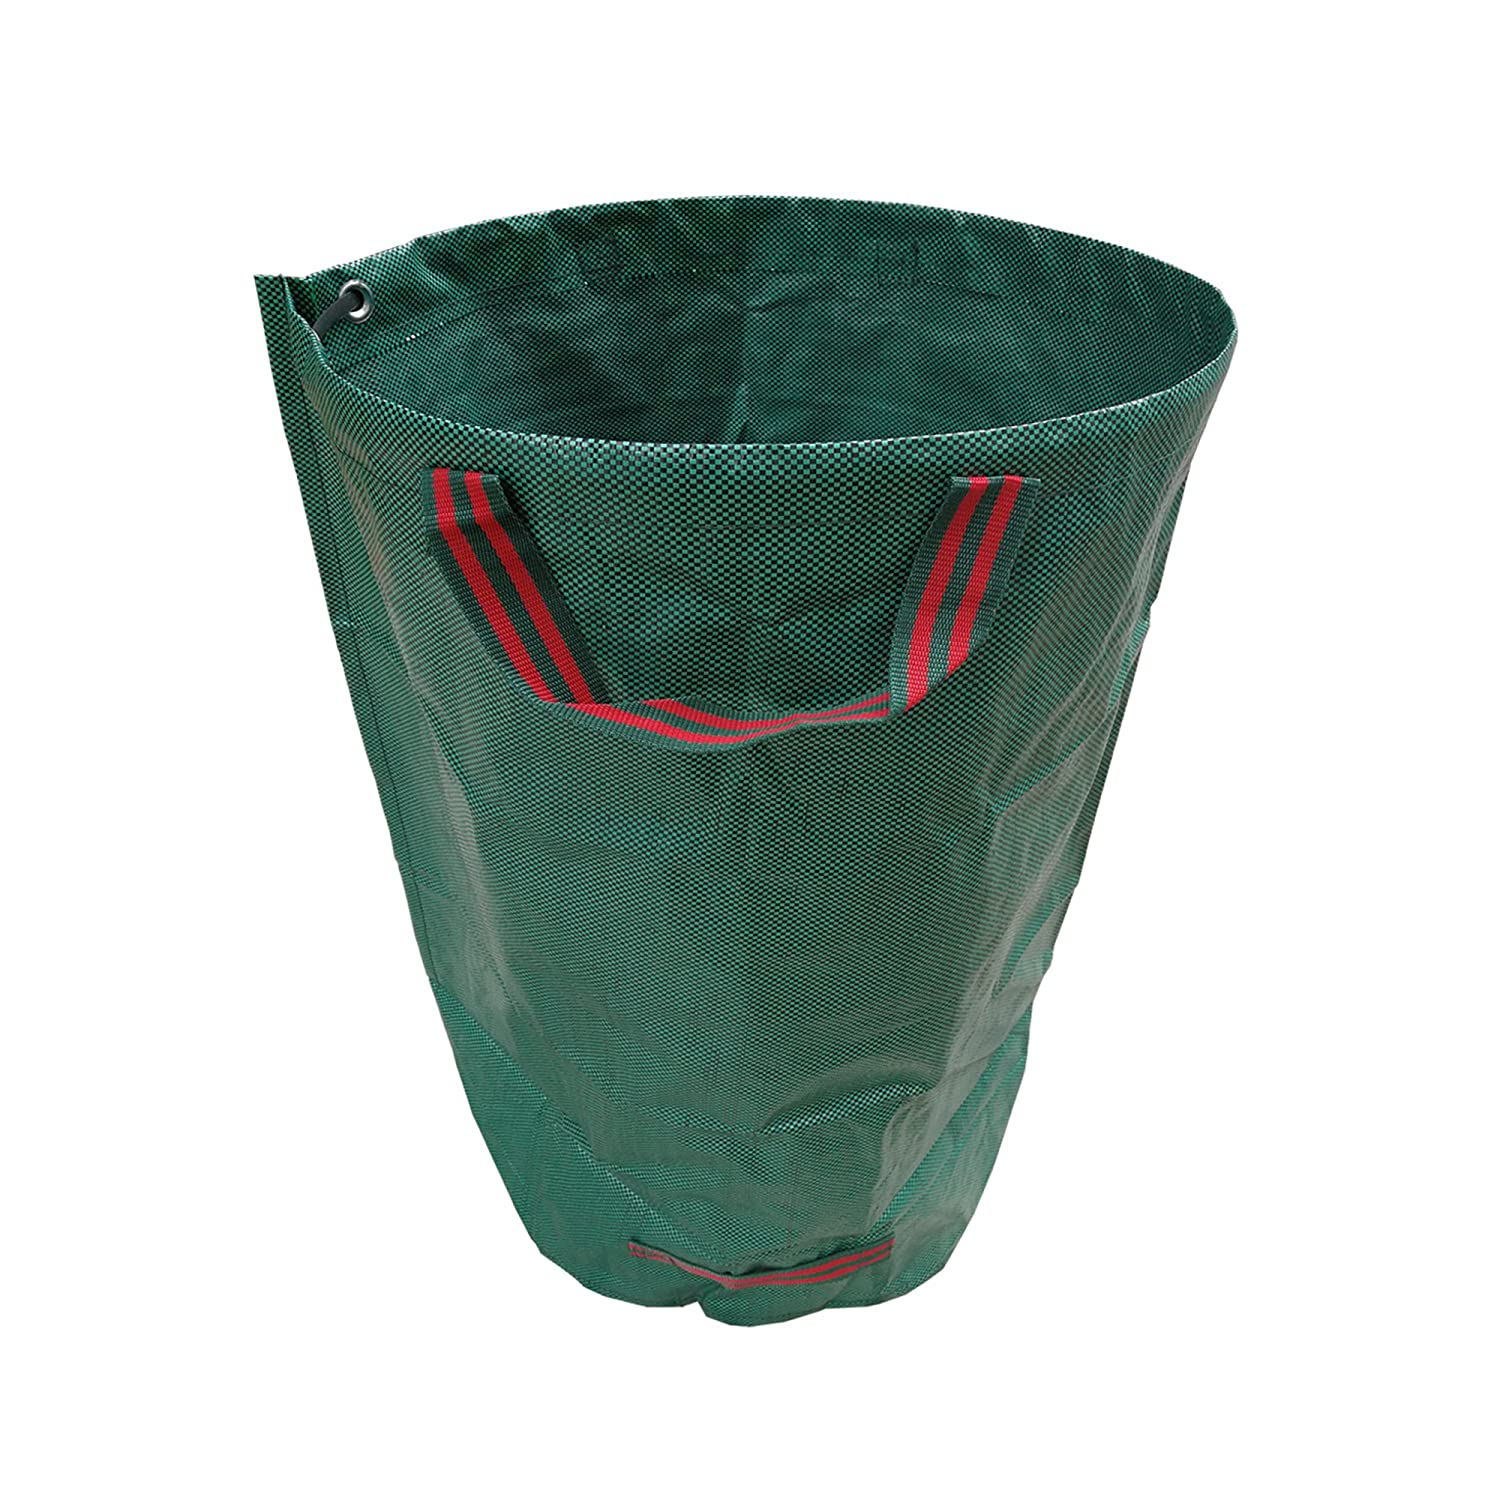 Eachgoo Garden Waste Bag, 1 x large 272L Garden Rubbish Bag(H76 cm, D67 cm)